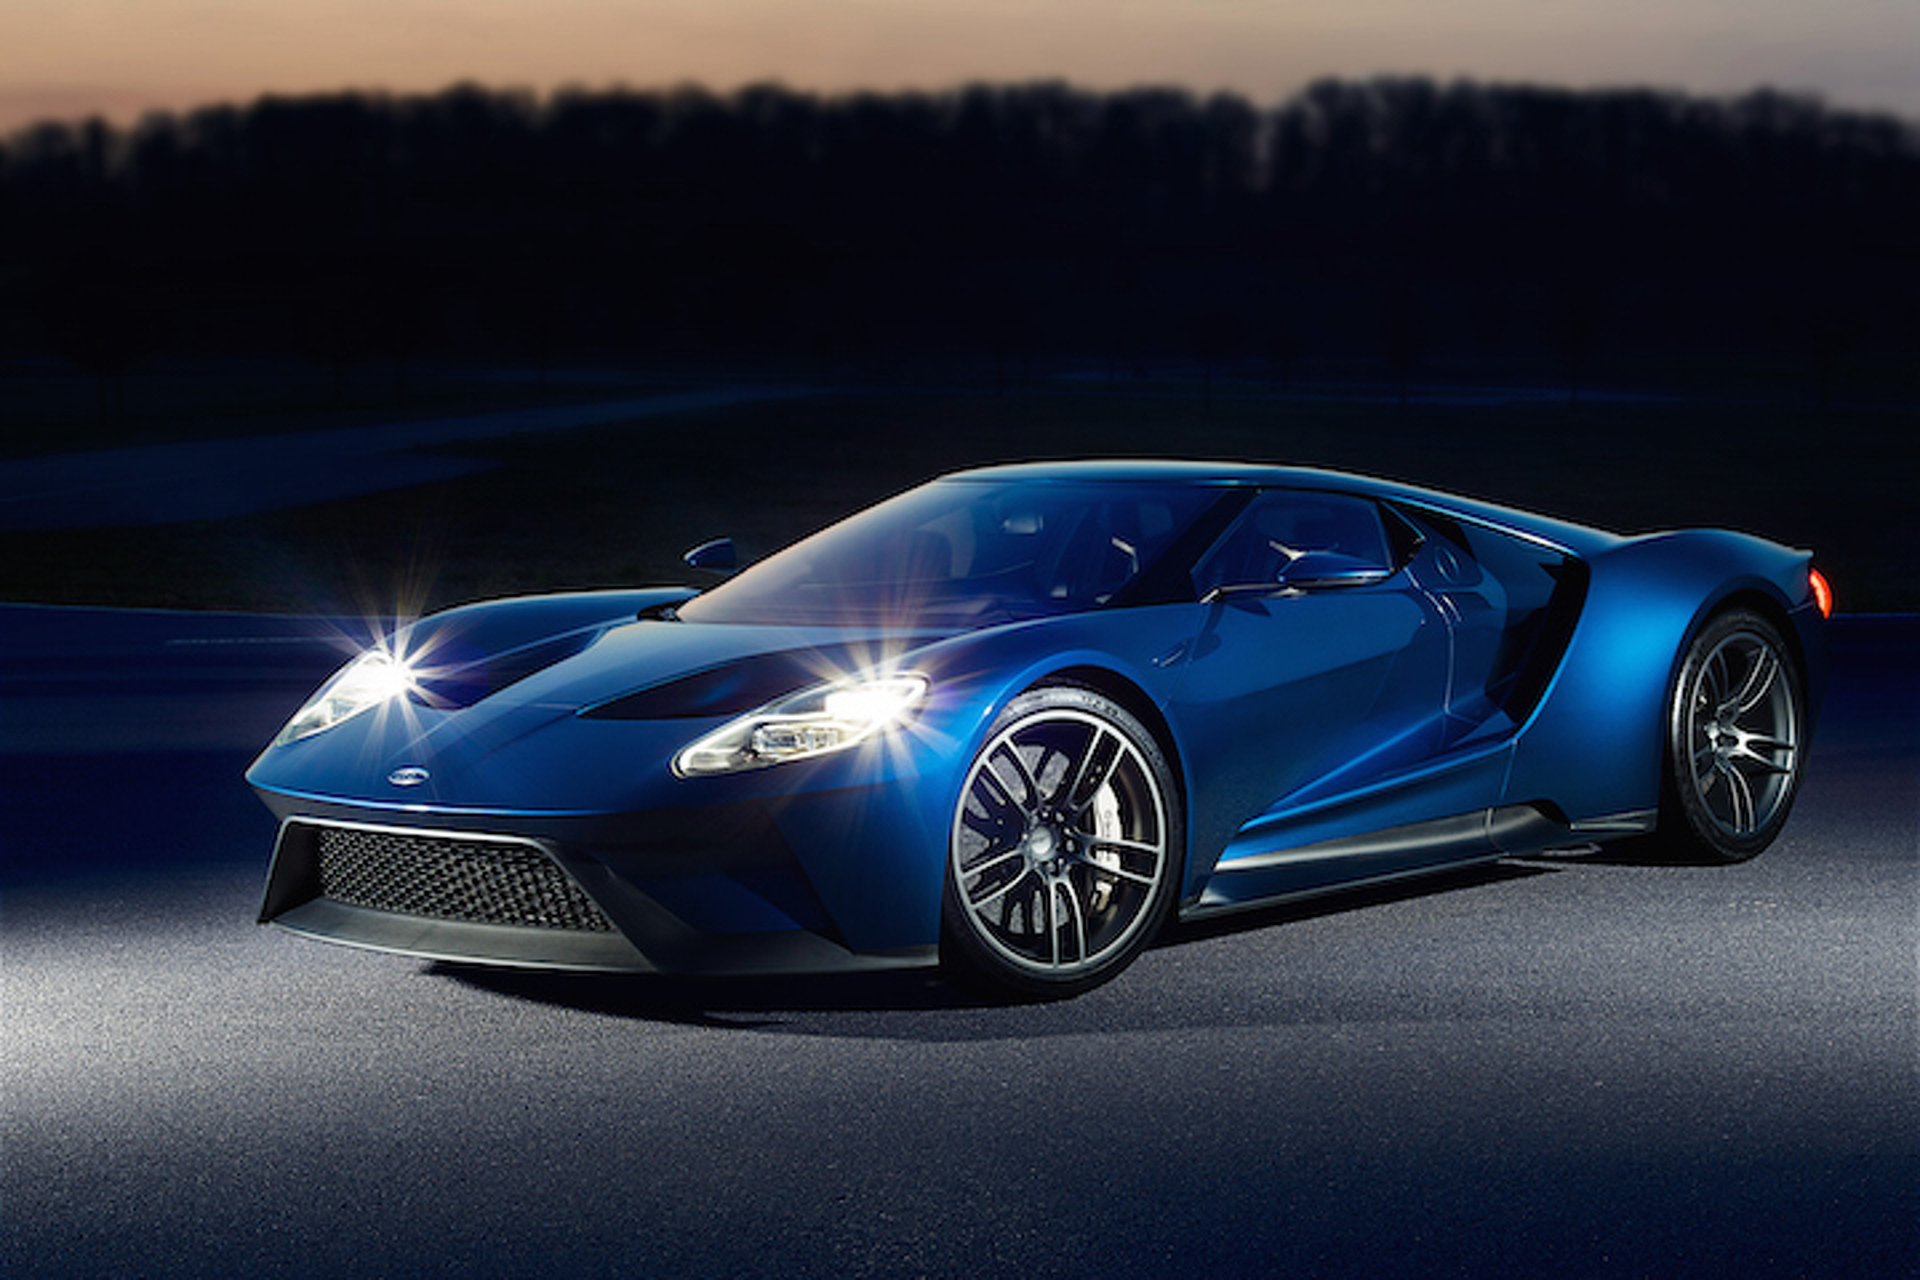 2016 Ford Gt Specs Revealed Via Forza Motorsport 6 Video Game